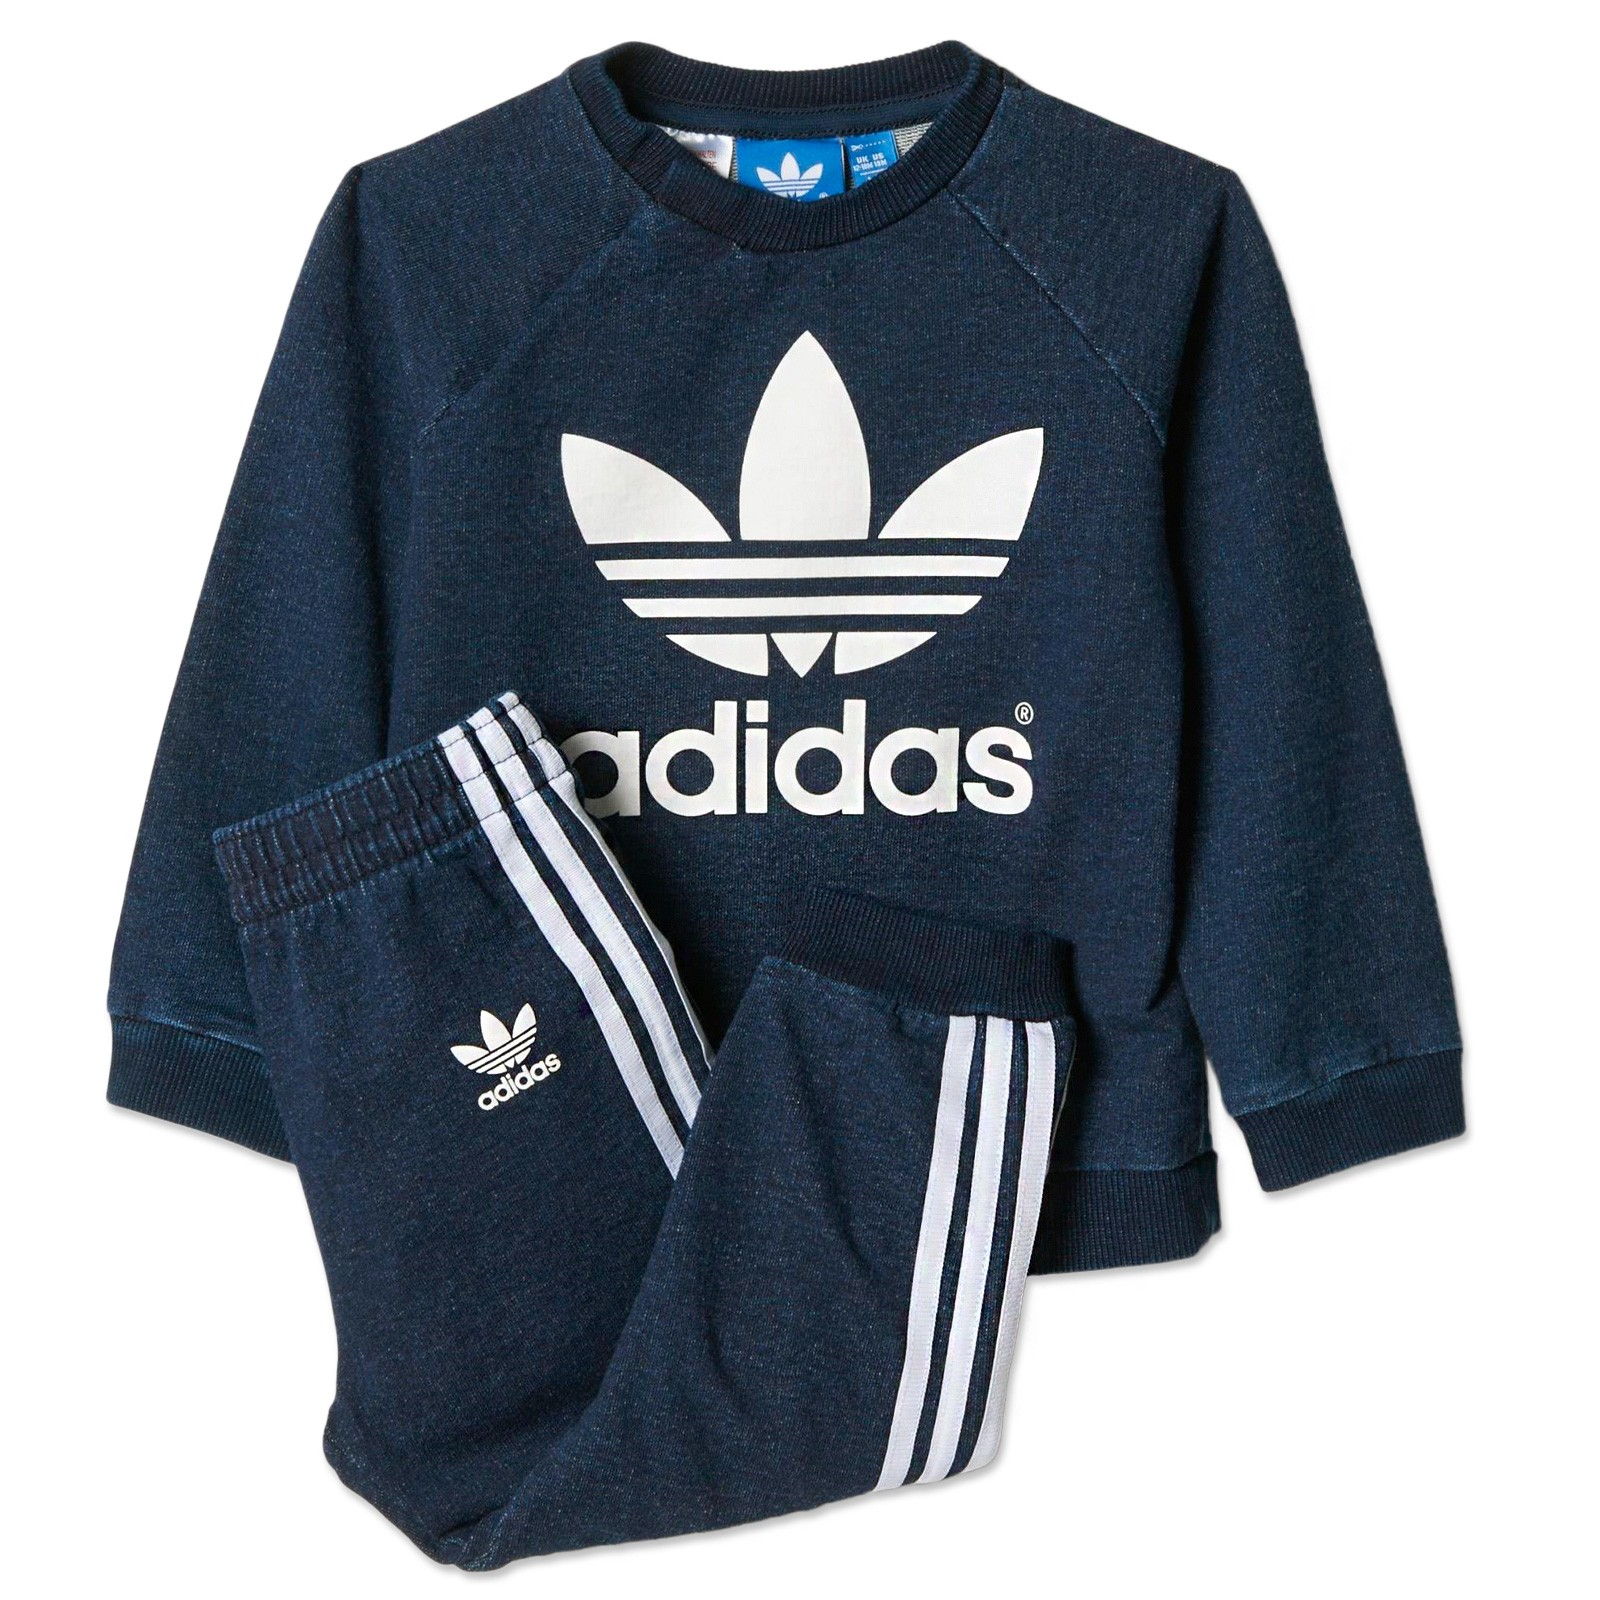 adidas originals jogger baby jeans jogging suit denim. Black Bedroom Furniture Sets. Home Design Ideas